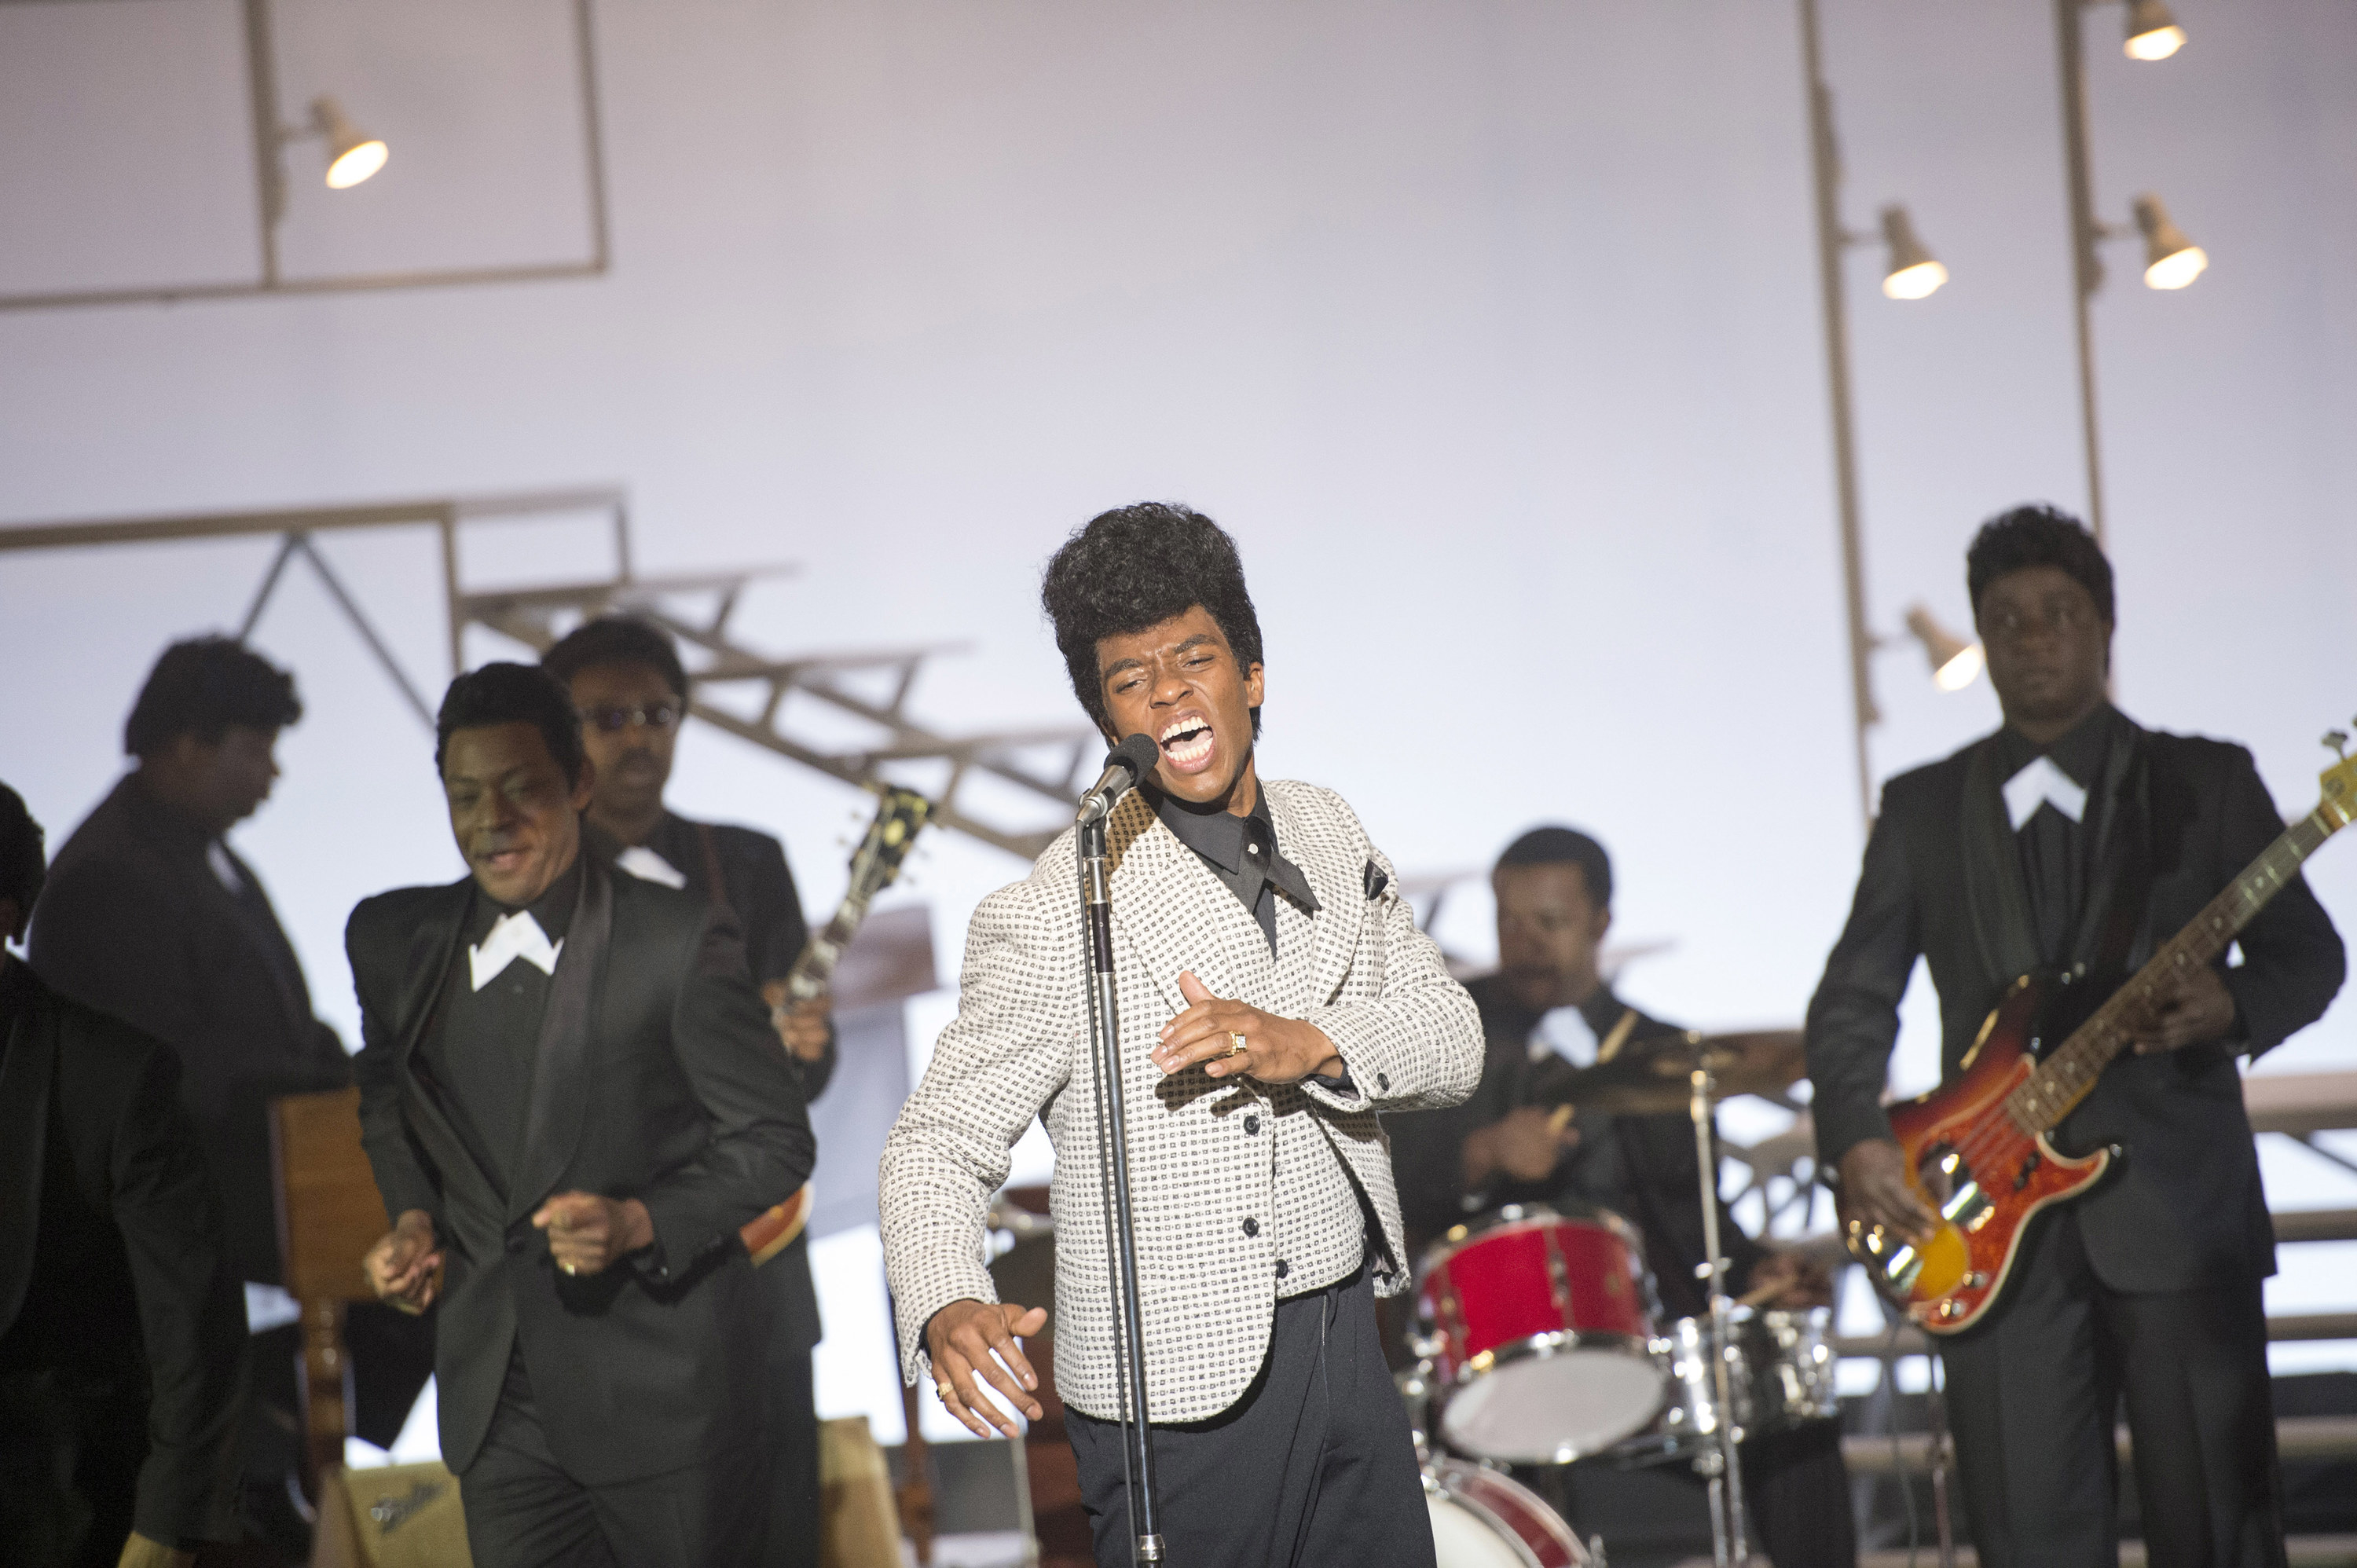 Chadwick Boseman performing as James Brown in the film Get On Up